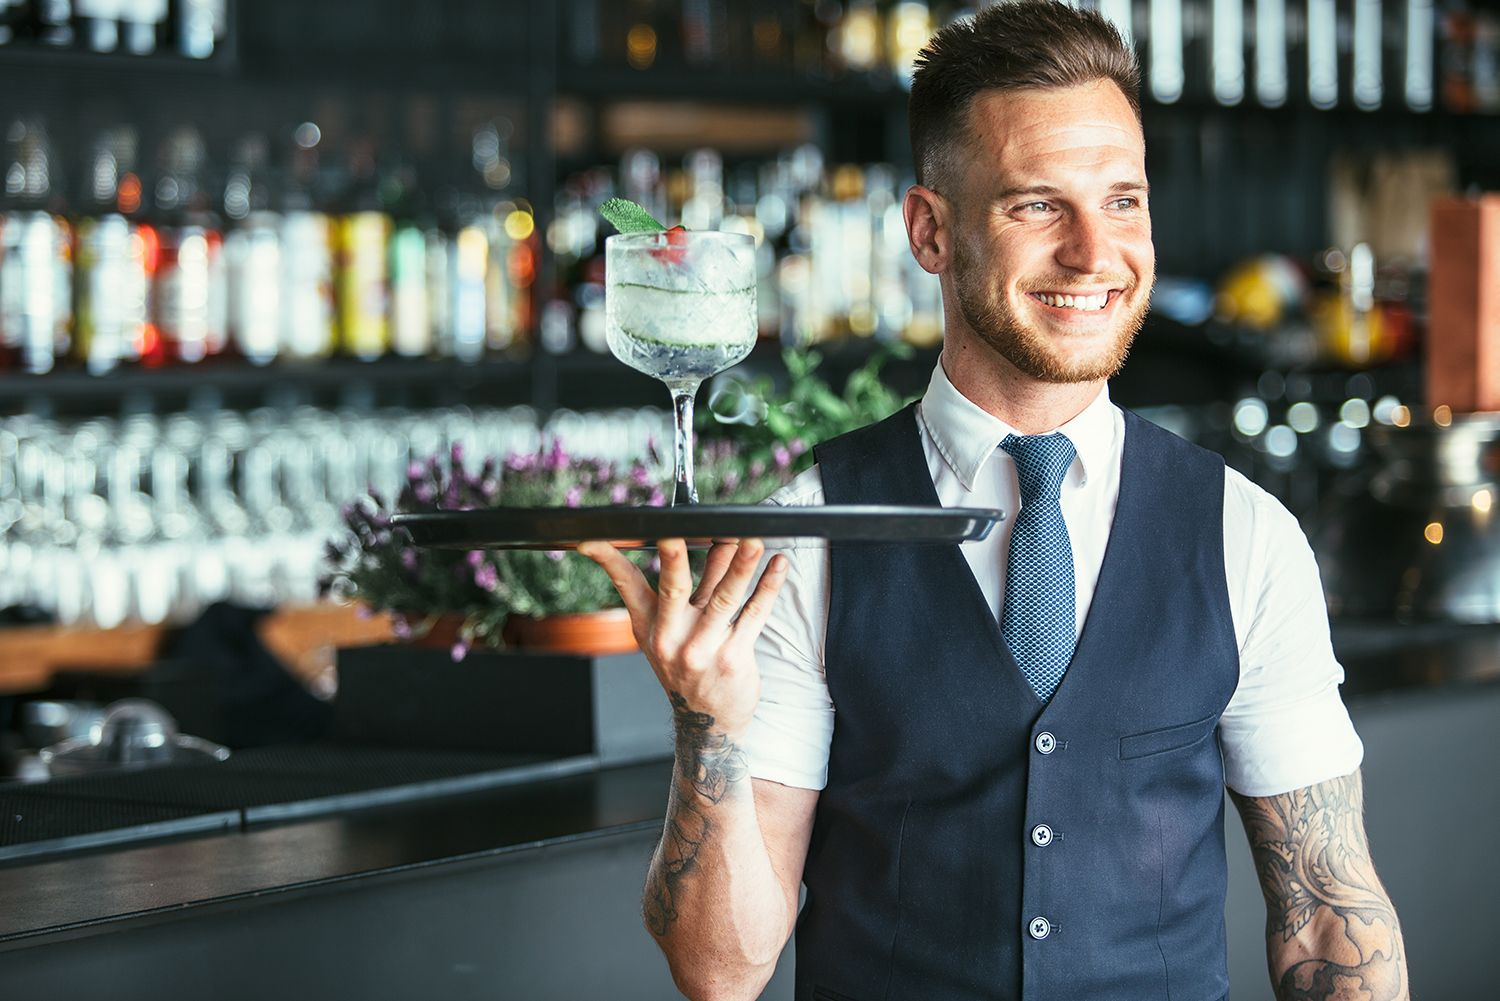 How to Get a Job at A Restaurant (and Make Great Tips)